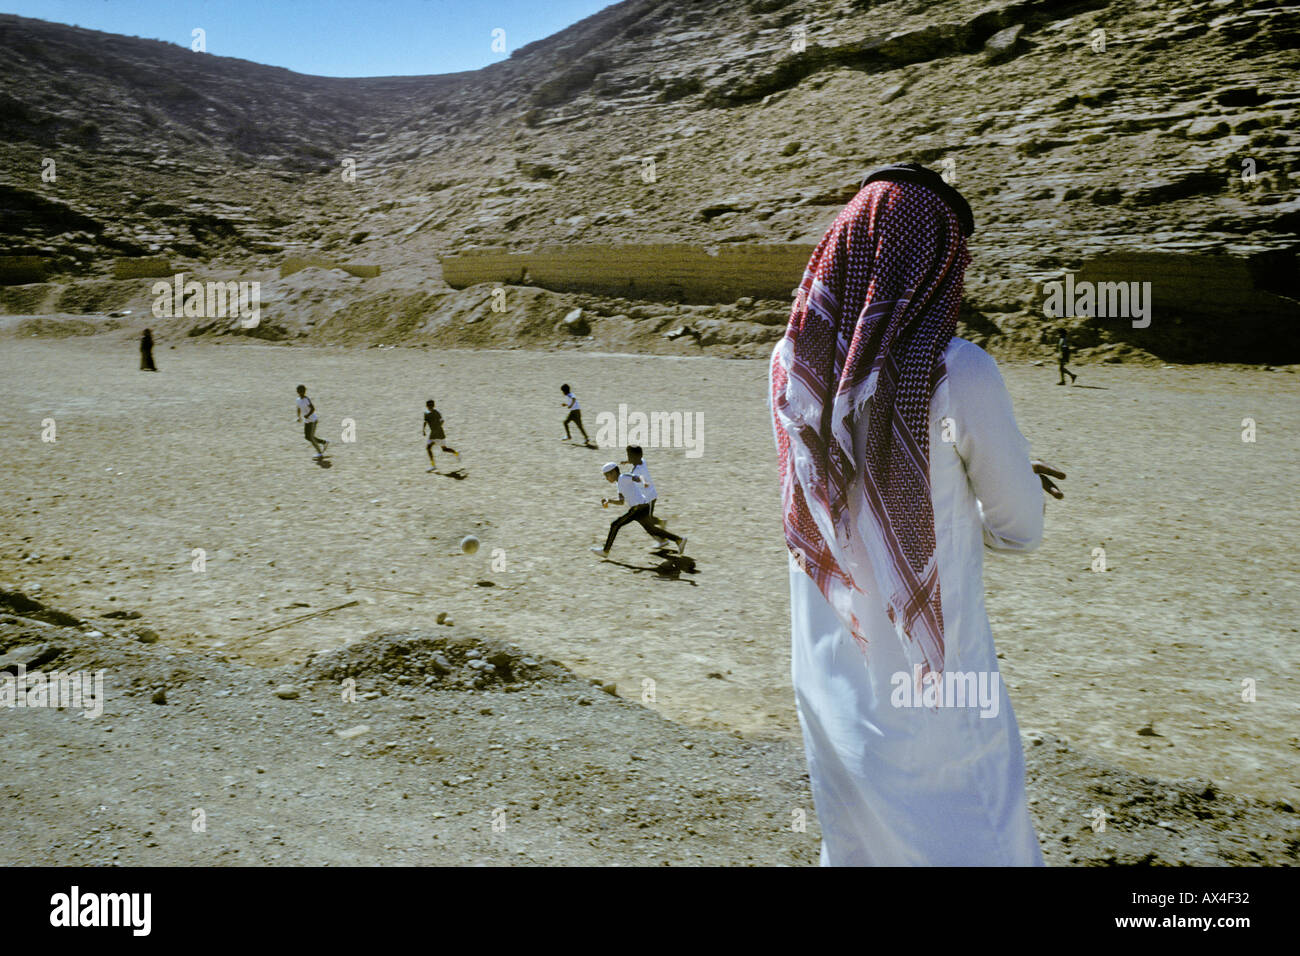 Football on a desert pitch at the edge of a Saudi village - Stock Image